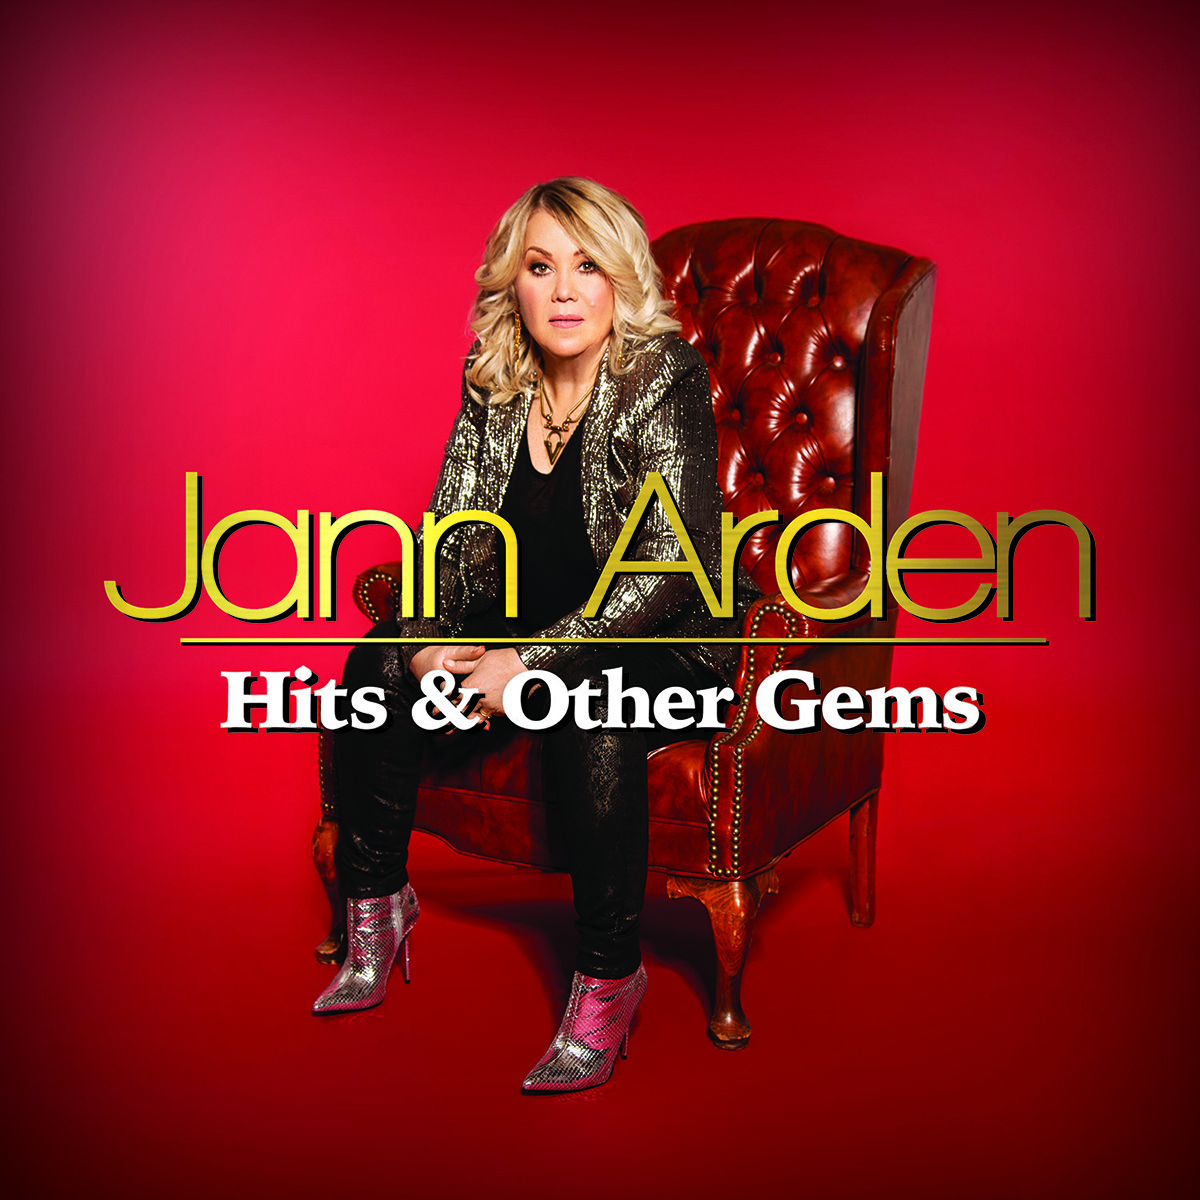 Jann Arden Announces New September 25 Release Date For Hits & Other Gems